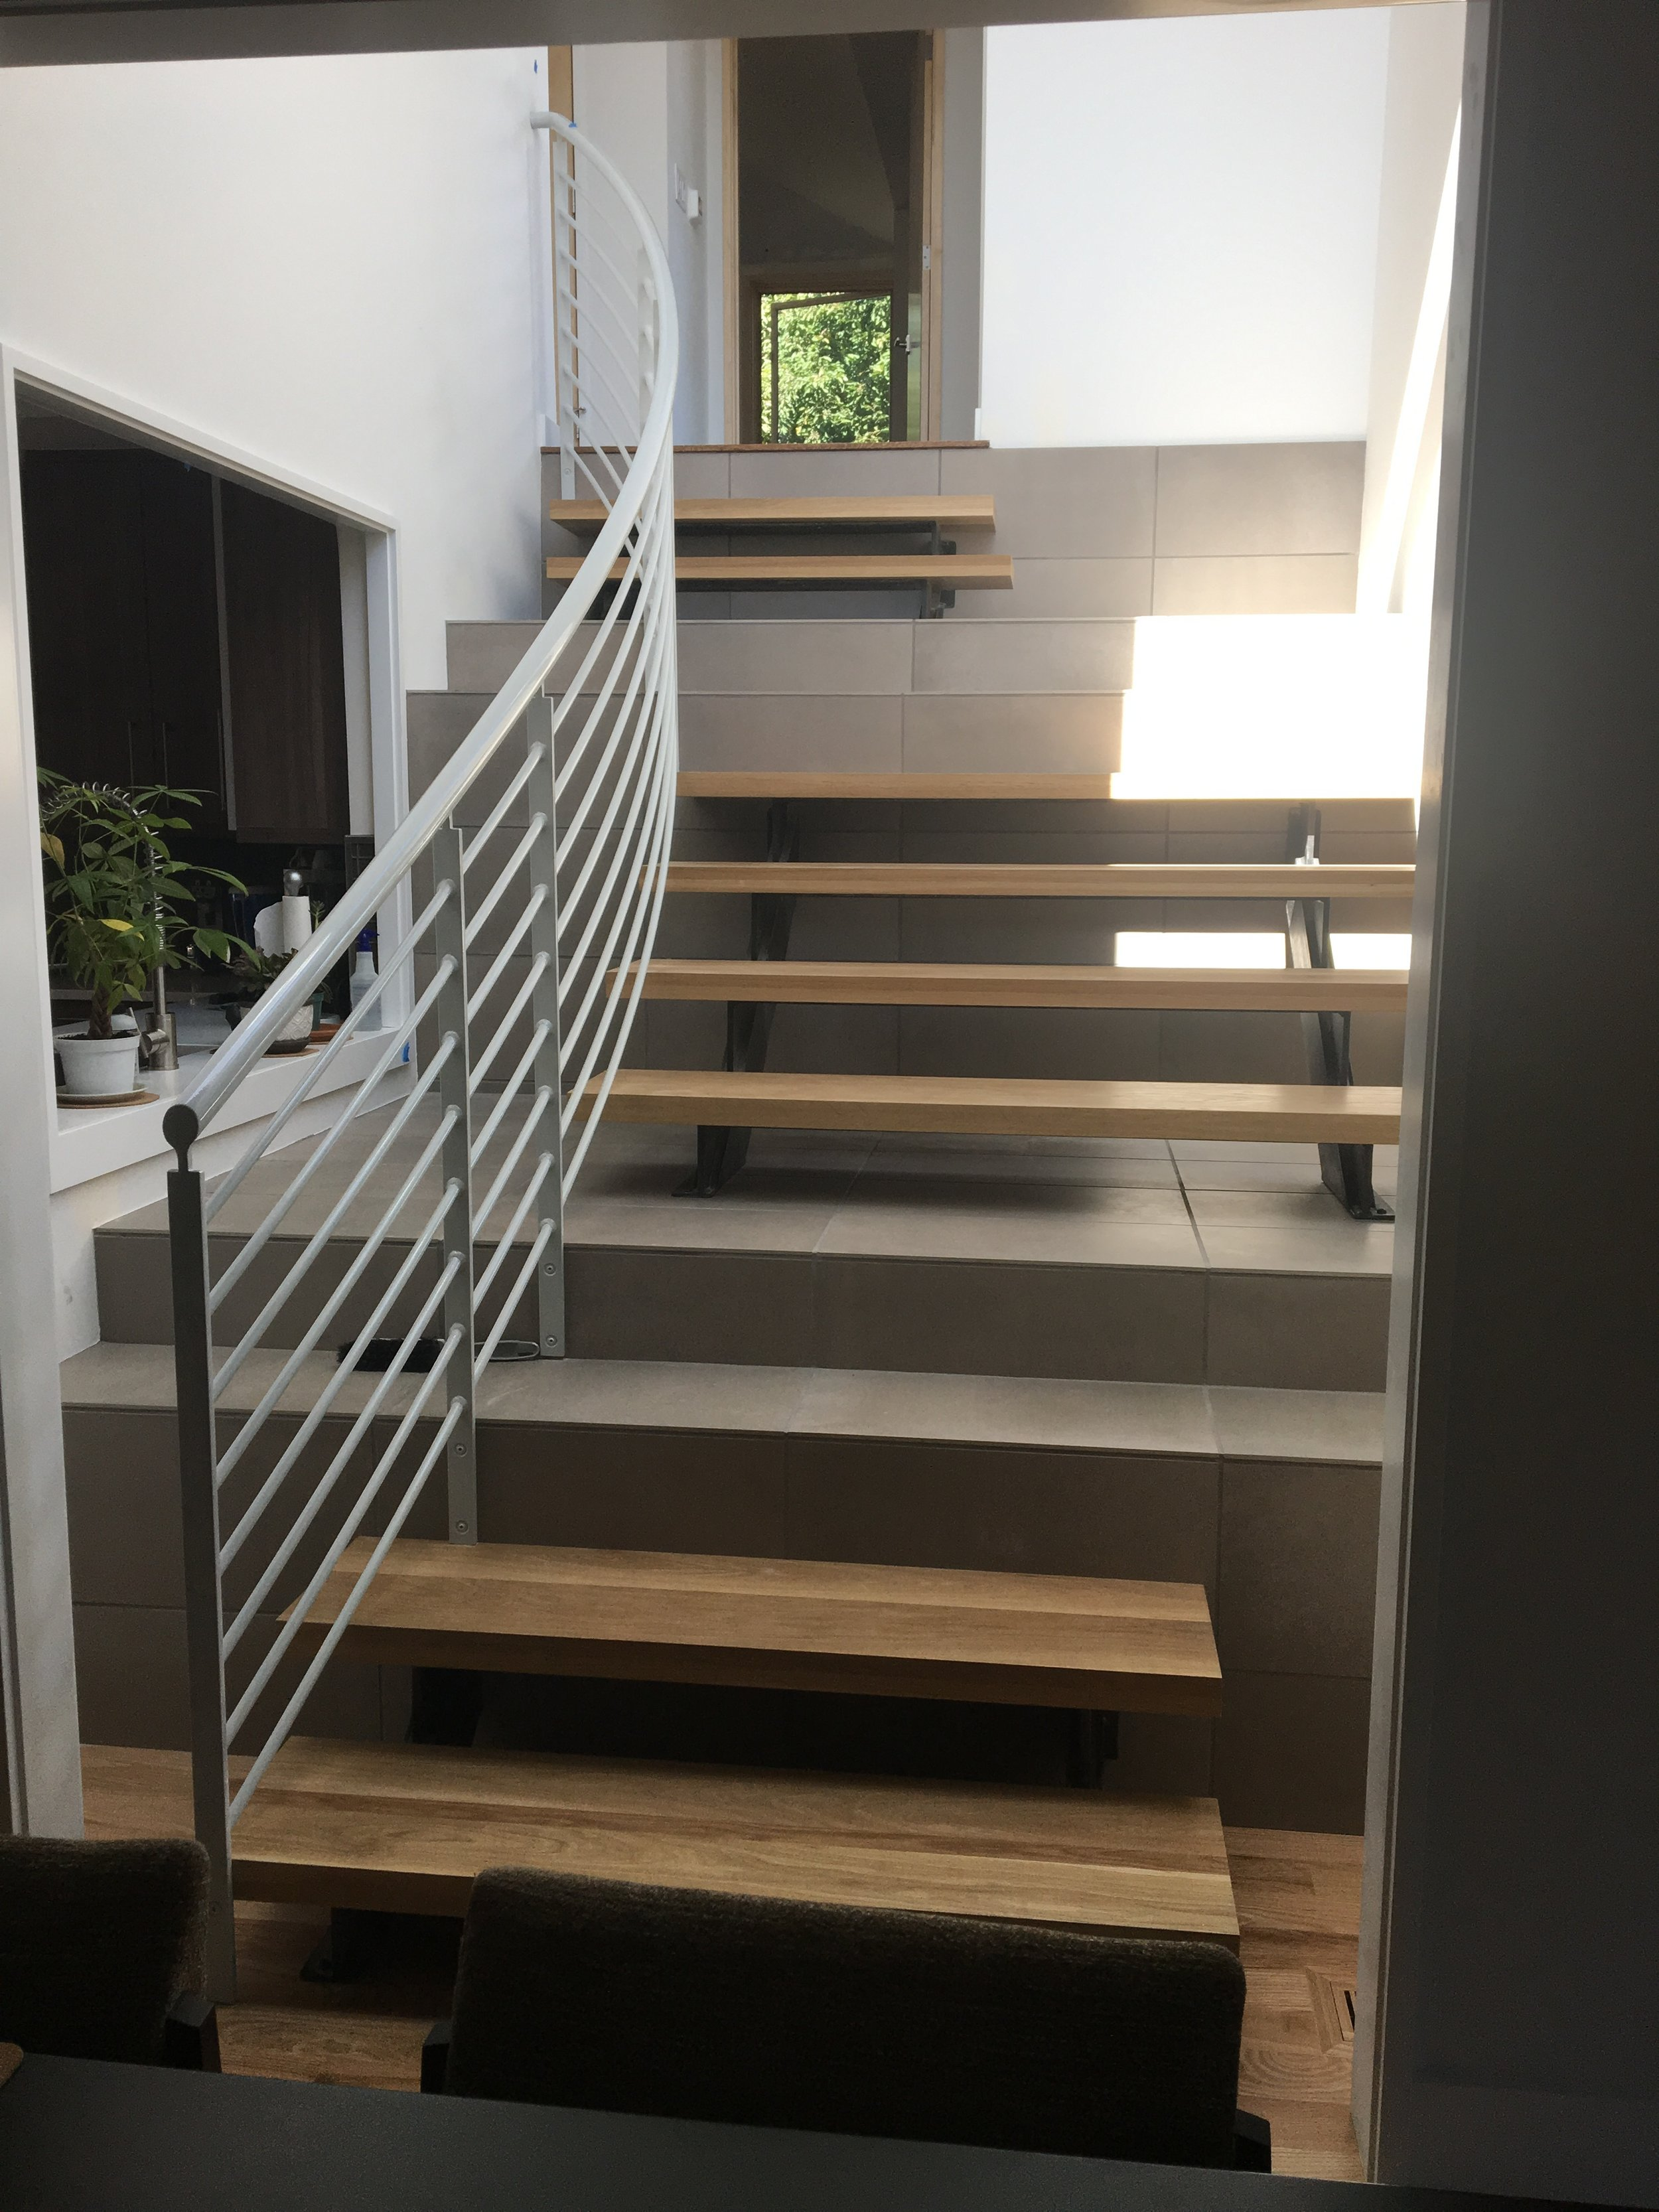 wood and tile stair with steel rail.JPG